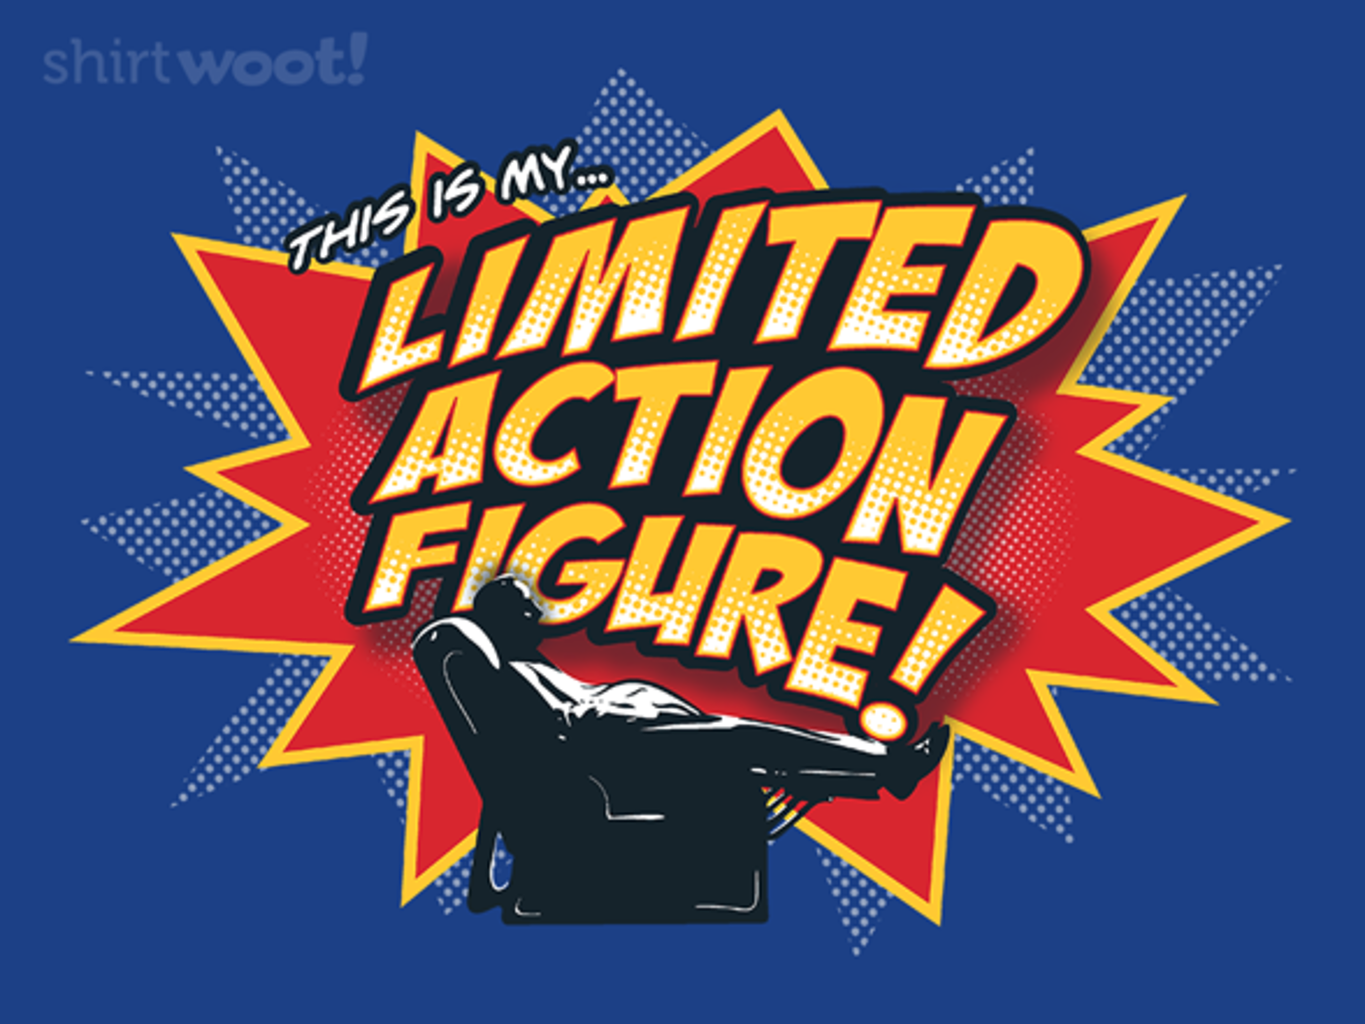 Woot!: Limited Action Figure